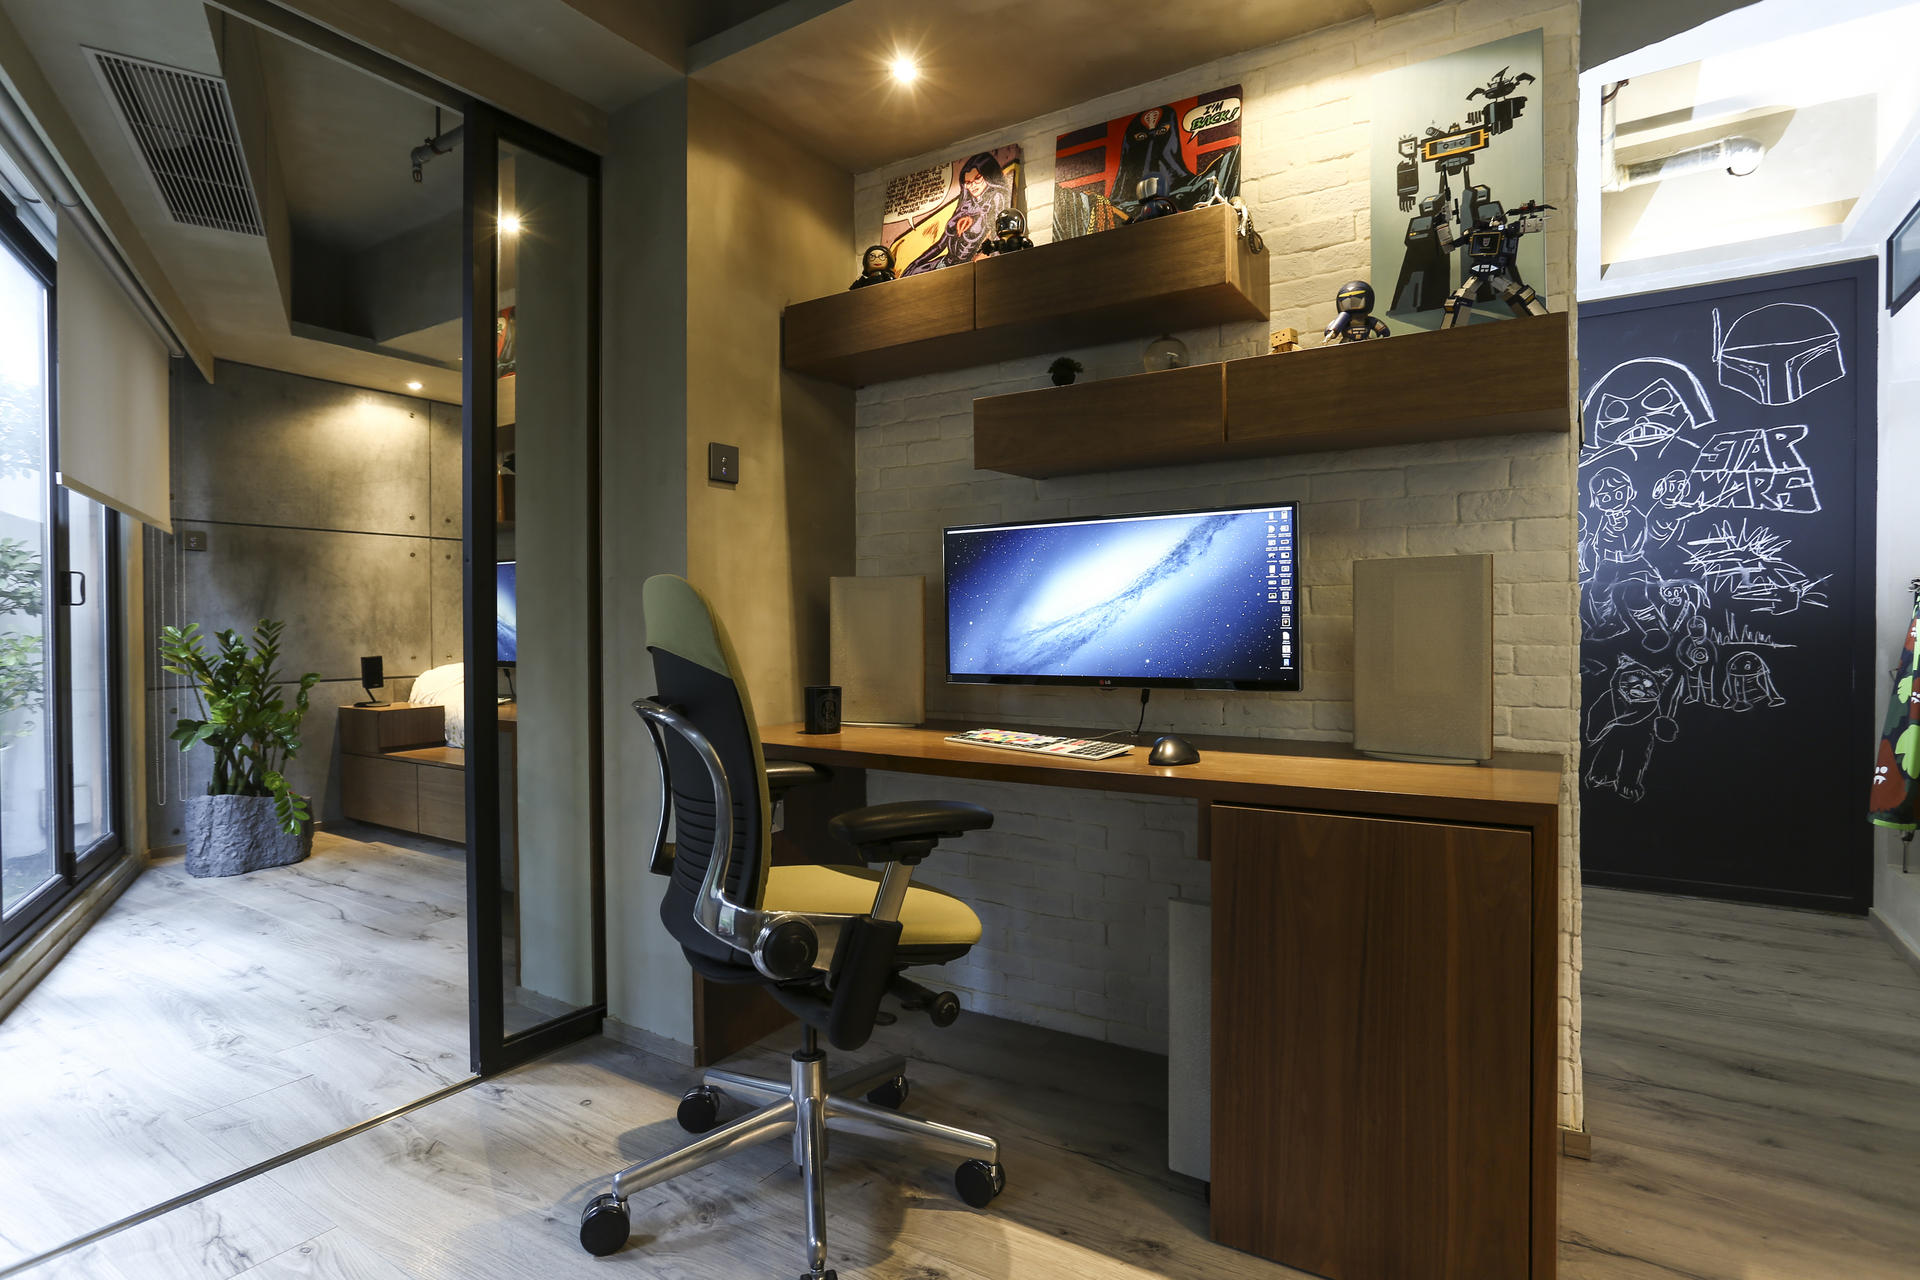 Industrial Style Meant Hard Work For Hong Kong Flat Owner